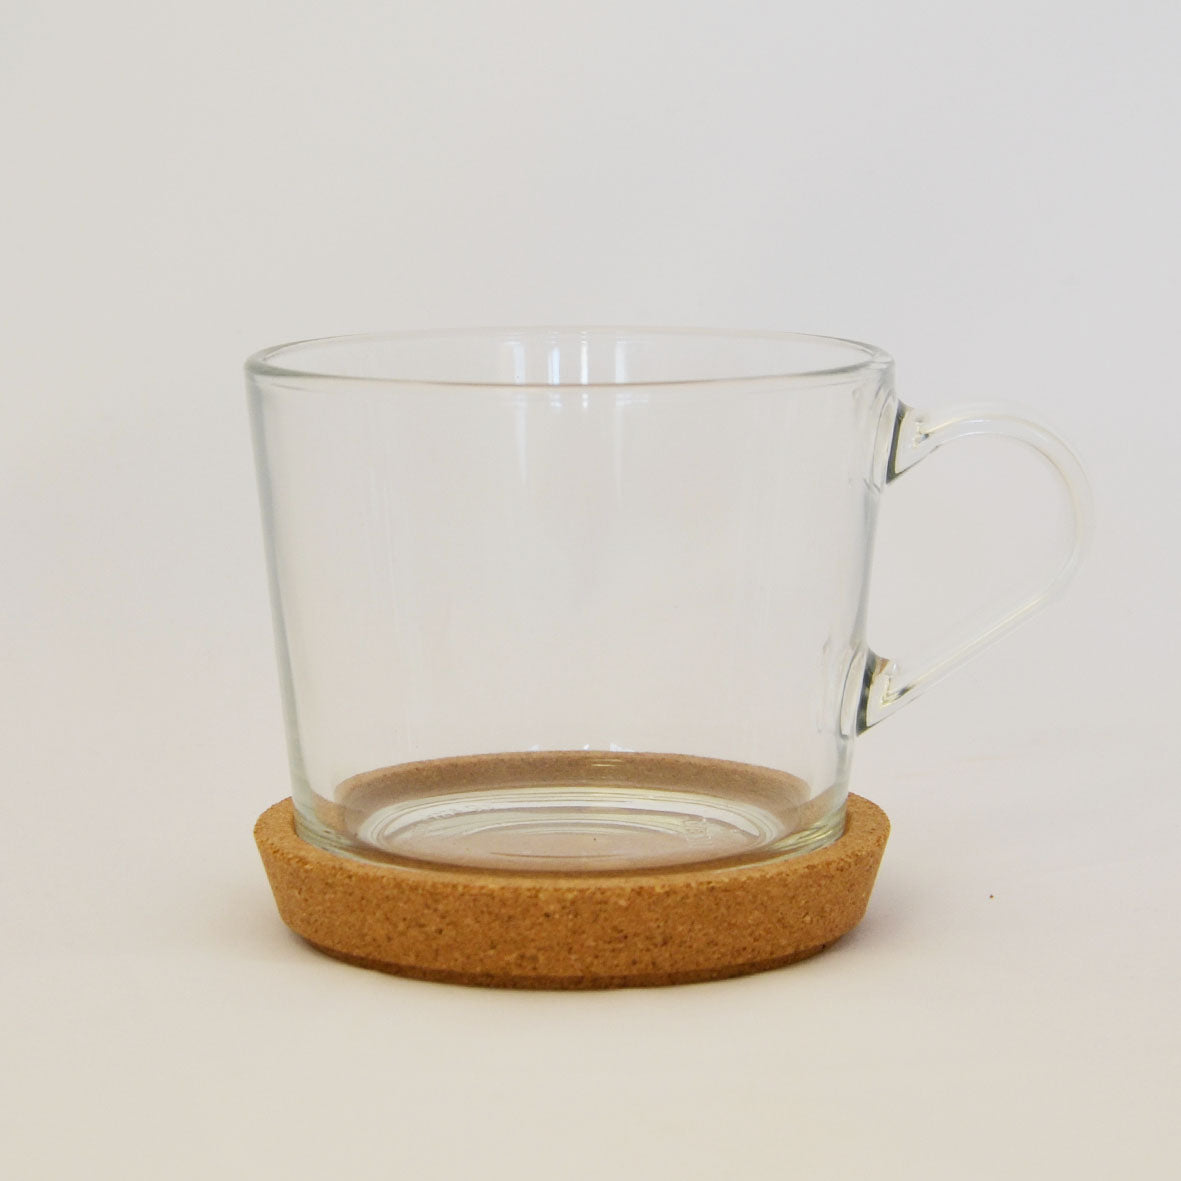 IKEA 365+ Glass Tea Cup With Cork Saucer